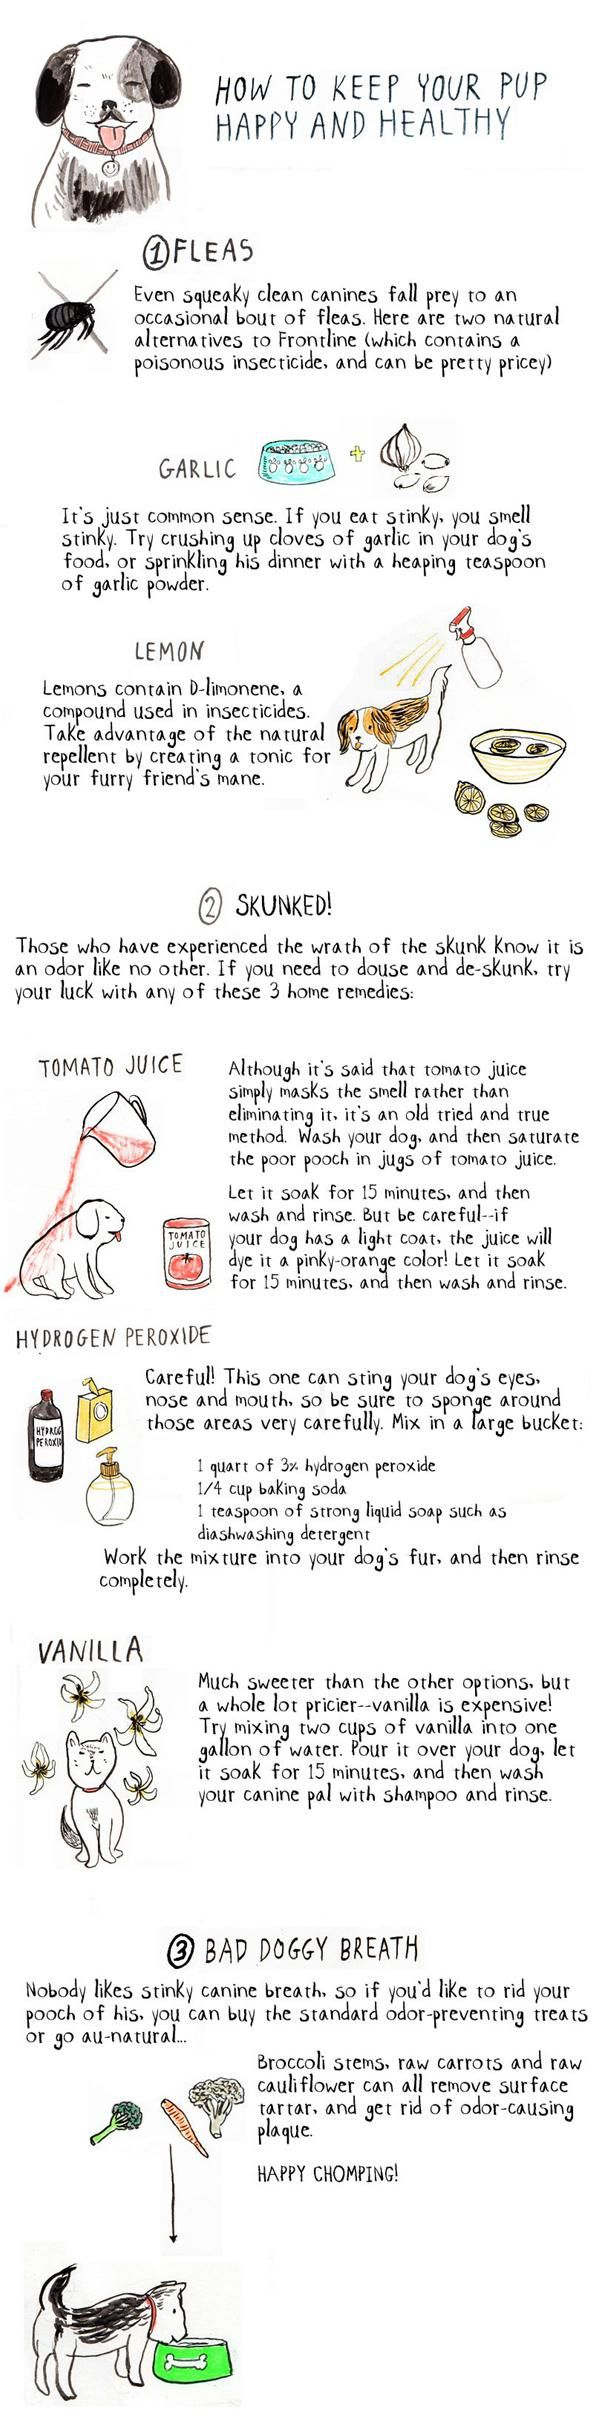 Home Remedies For Dogs Treating Fleas Bad Breath